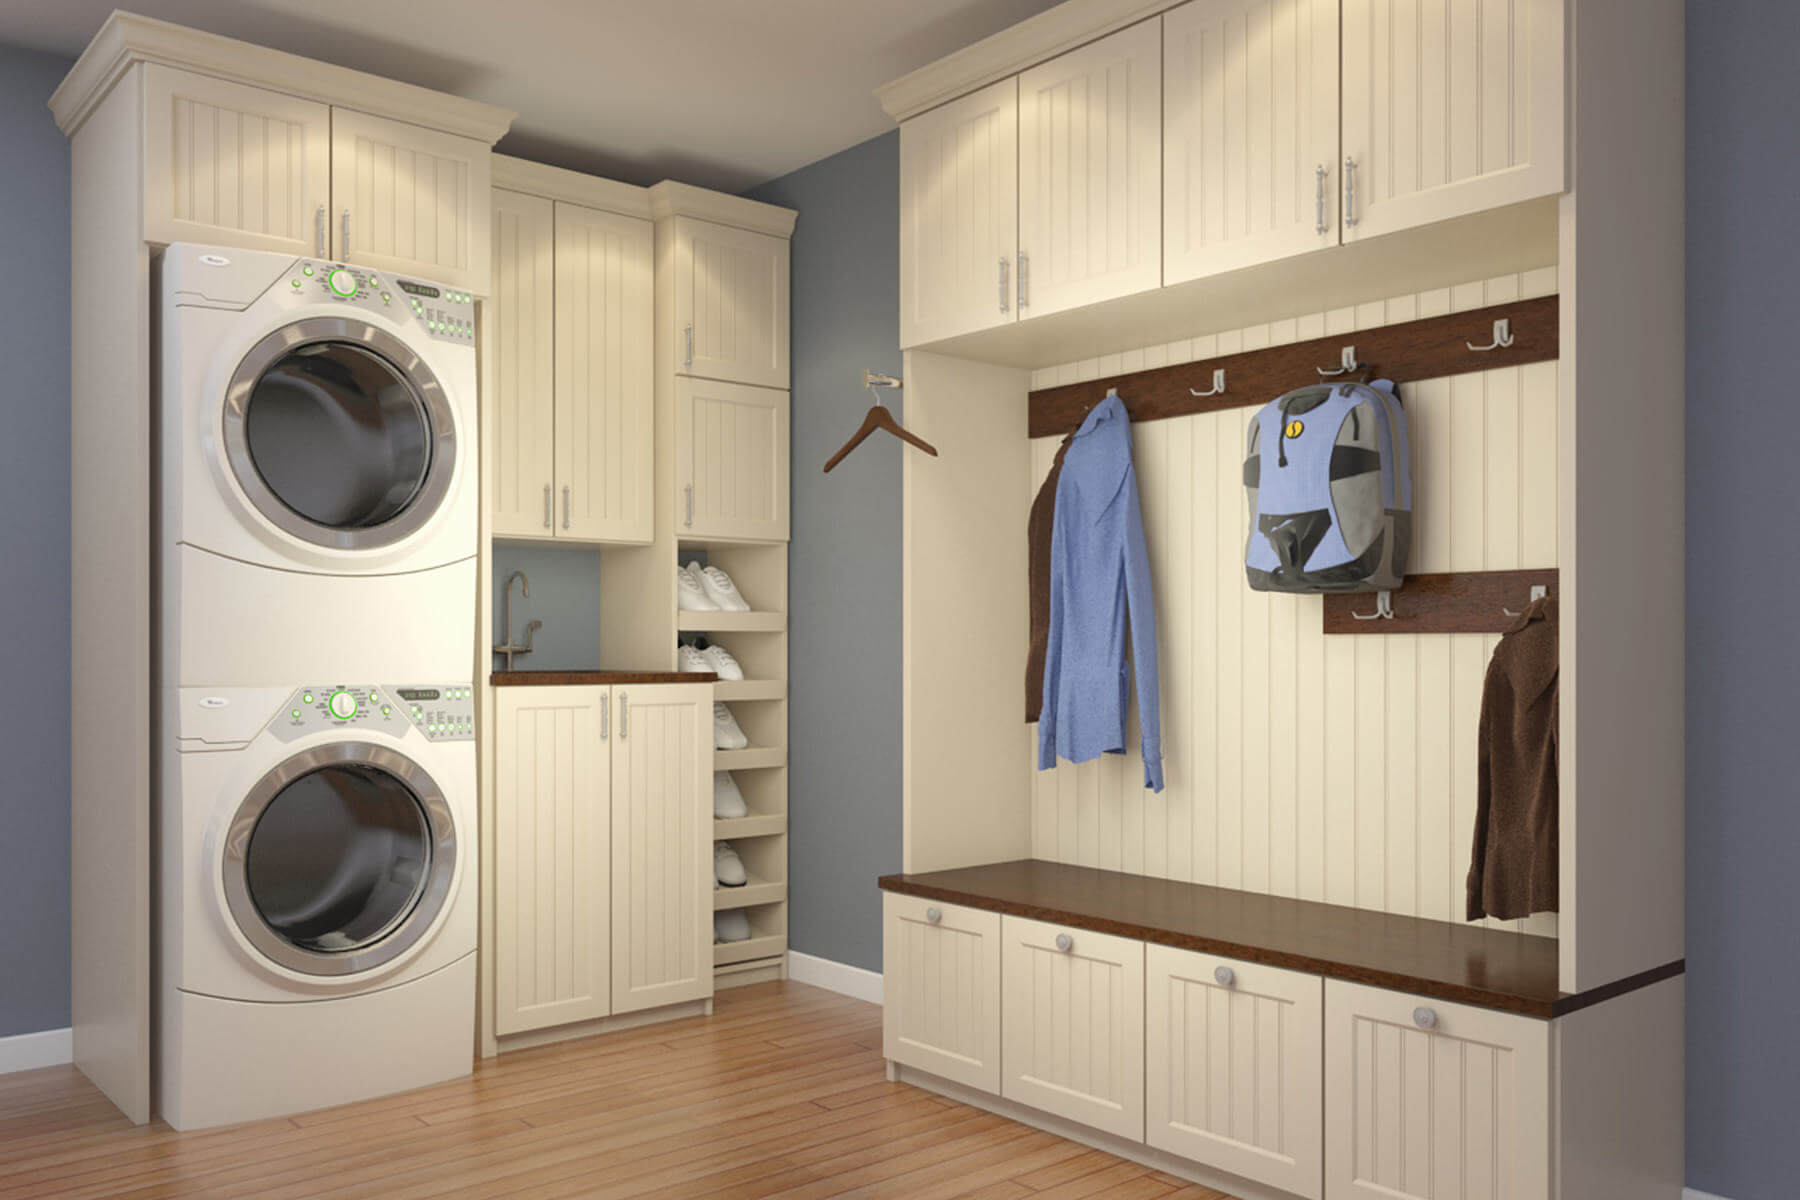 85 big small laundry room ideas designs with storage Laundry room blueprints